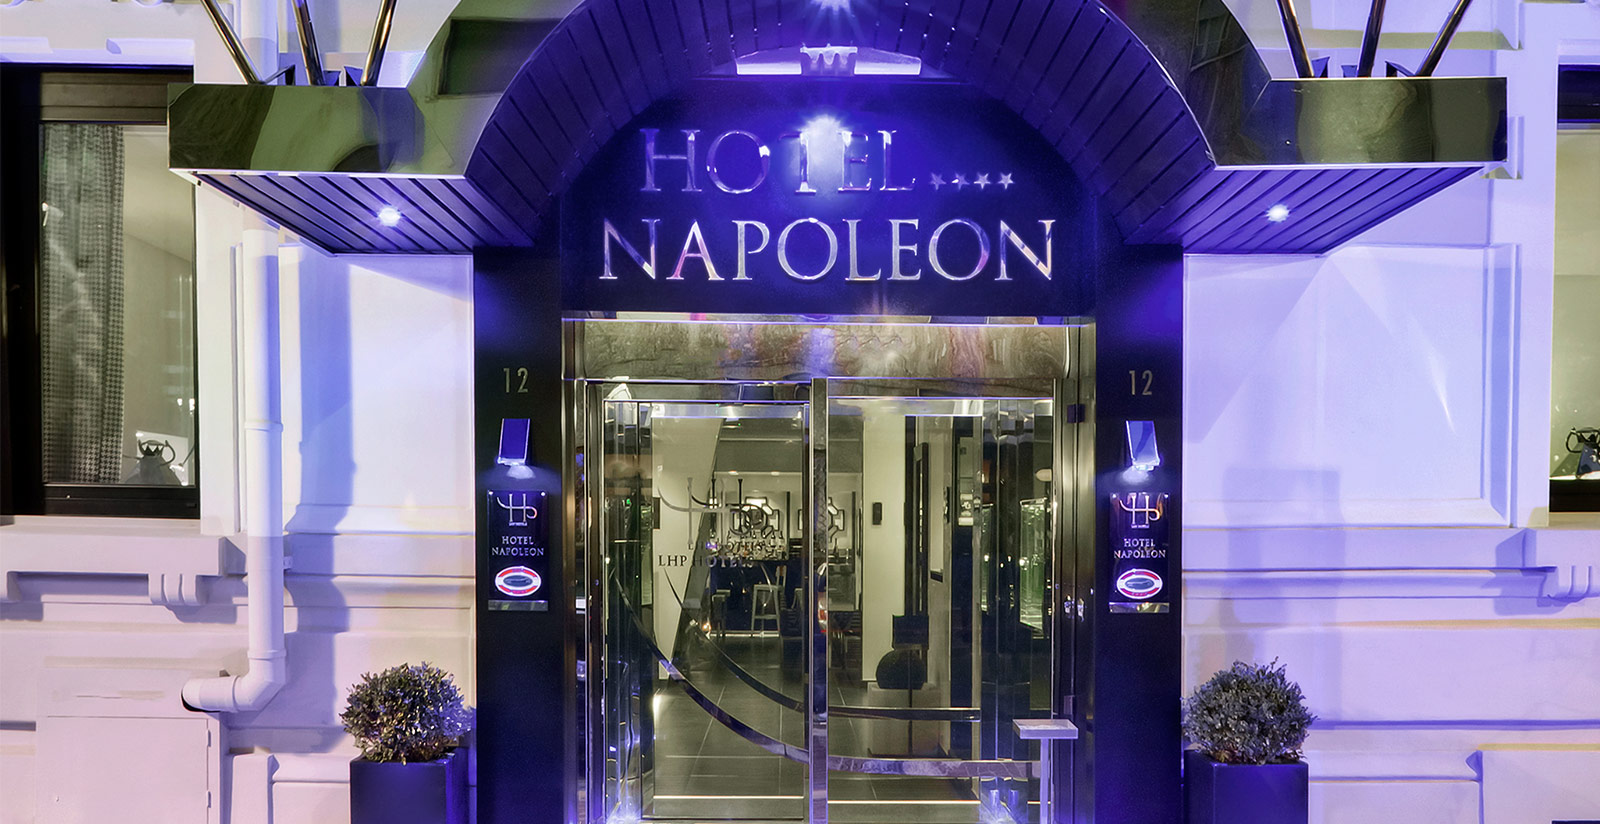 Hotel Napoleon Milano - Official Website - 4 star Hotel Milan Italy